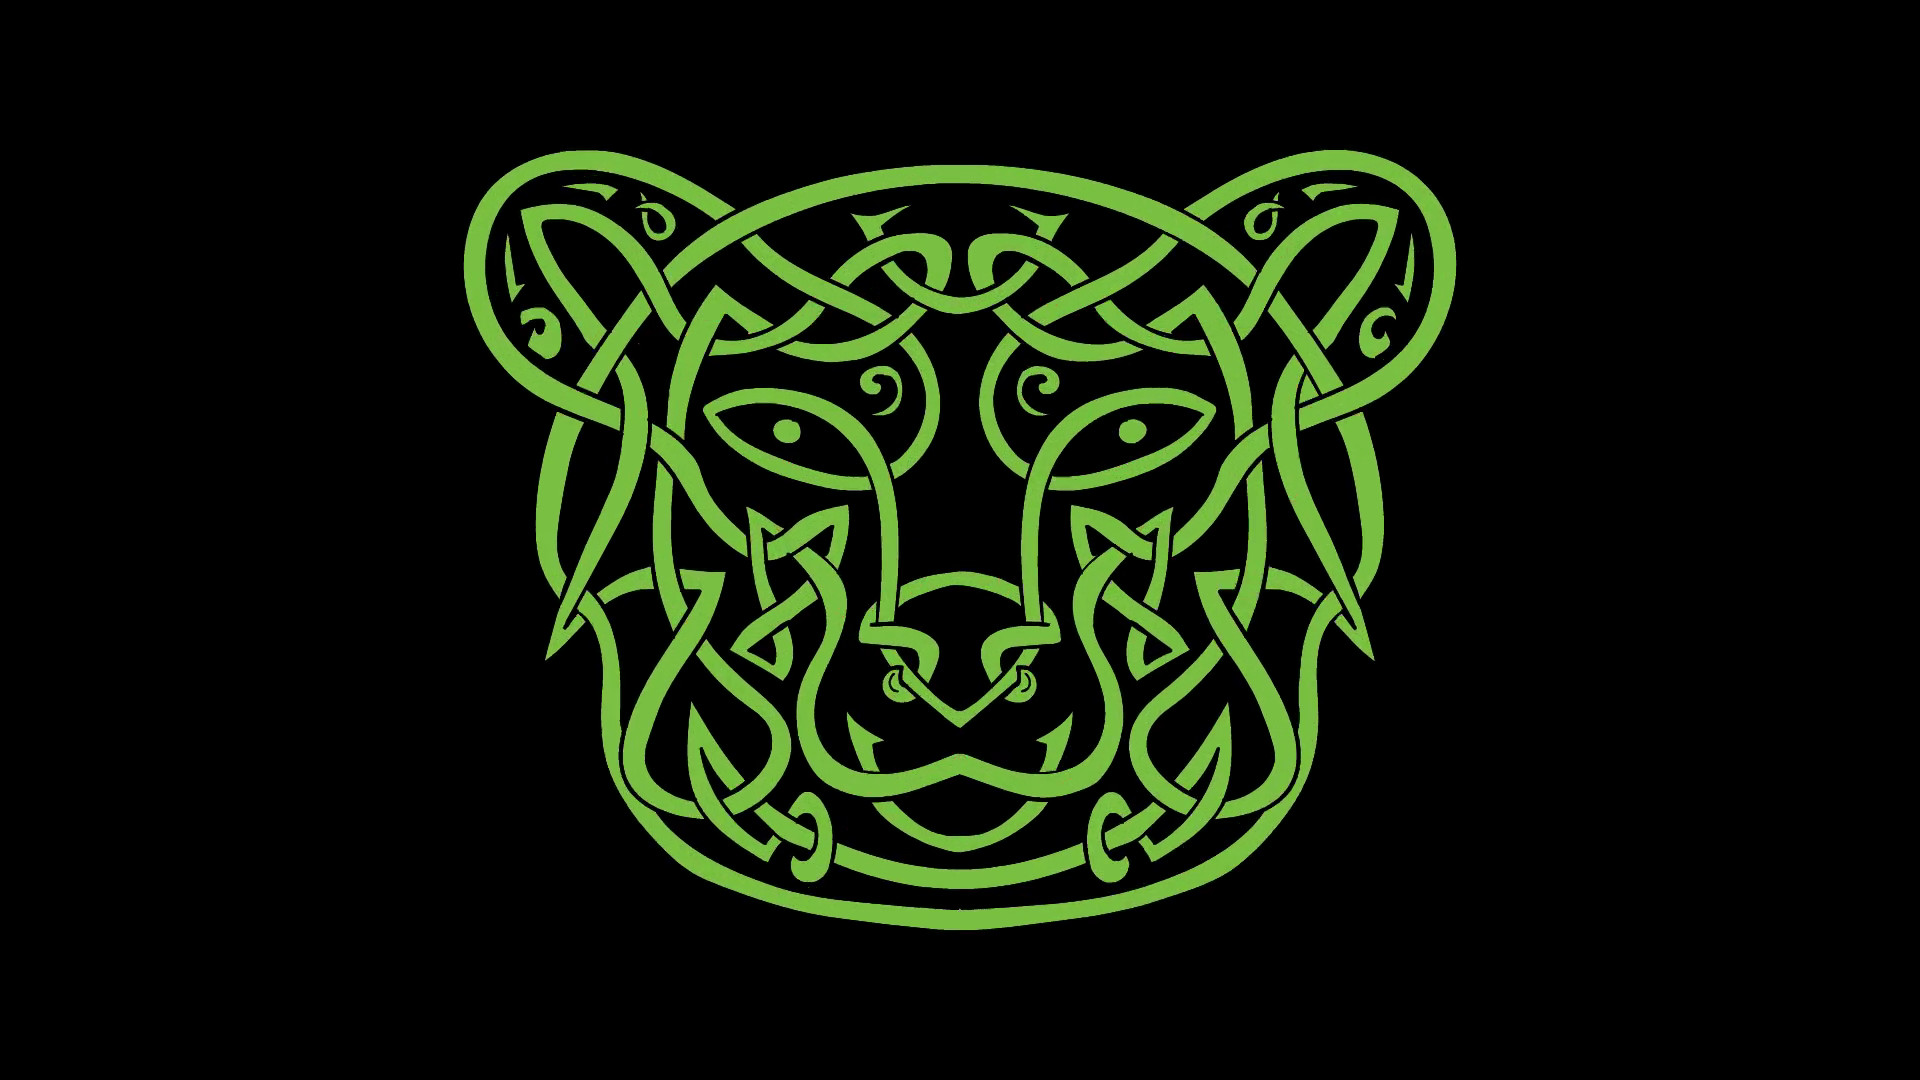 Res: 1920x1080, Bear and Bull Celtic Knot Morph Animation Motion Background - Videoblocks